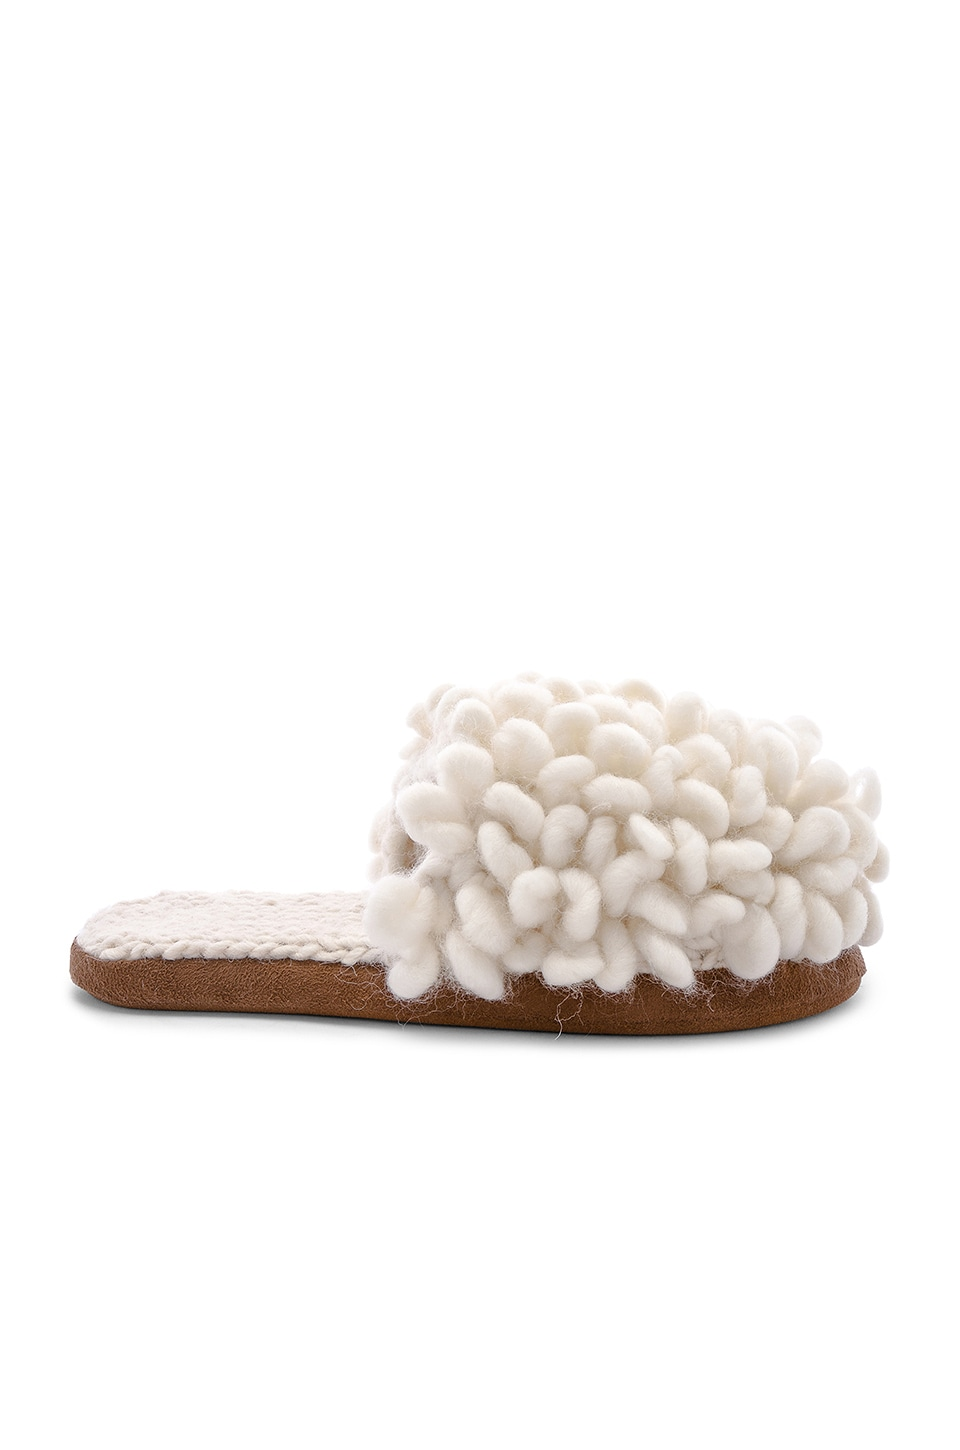 ARIANA BOHLING Loop Scuff Slipper in White